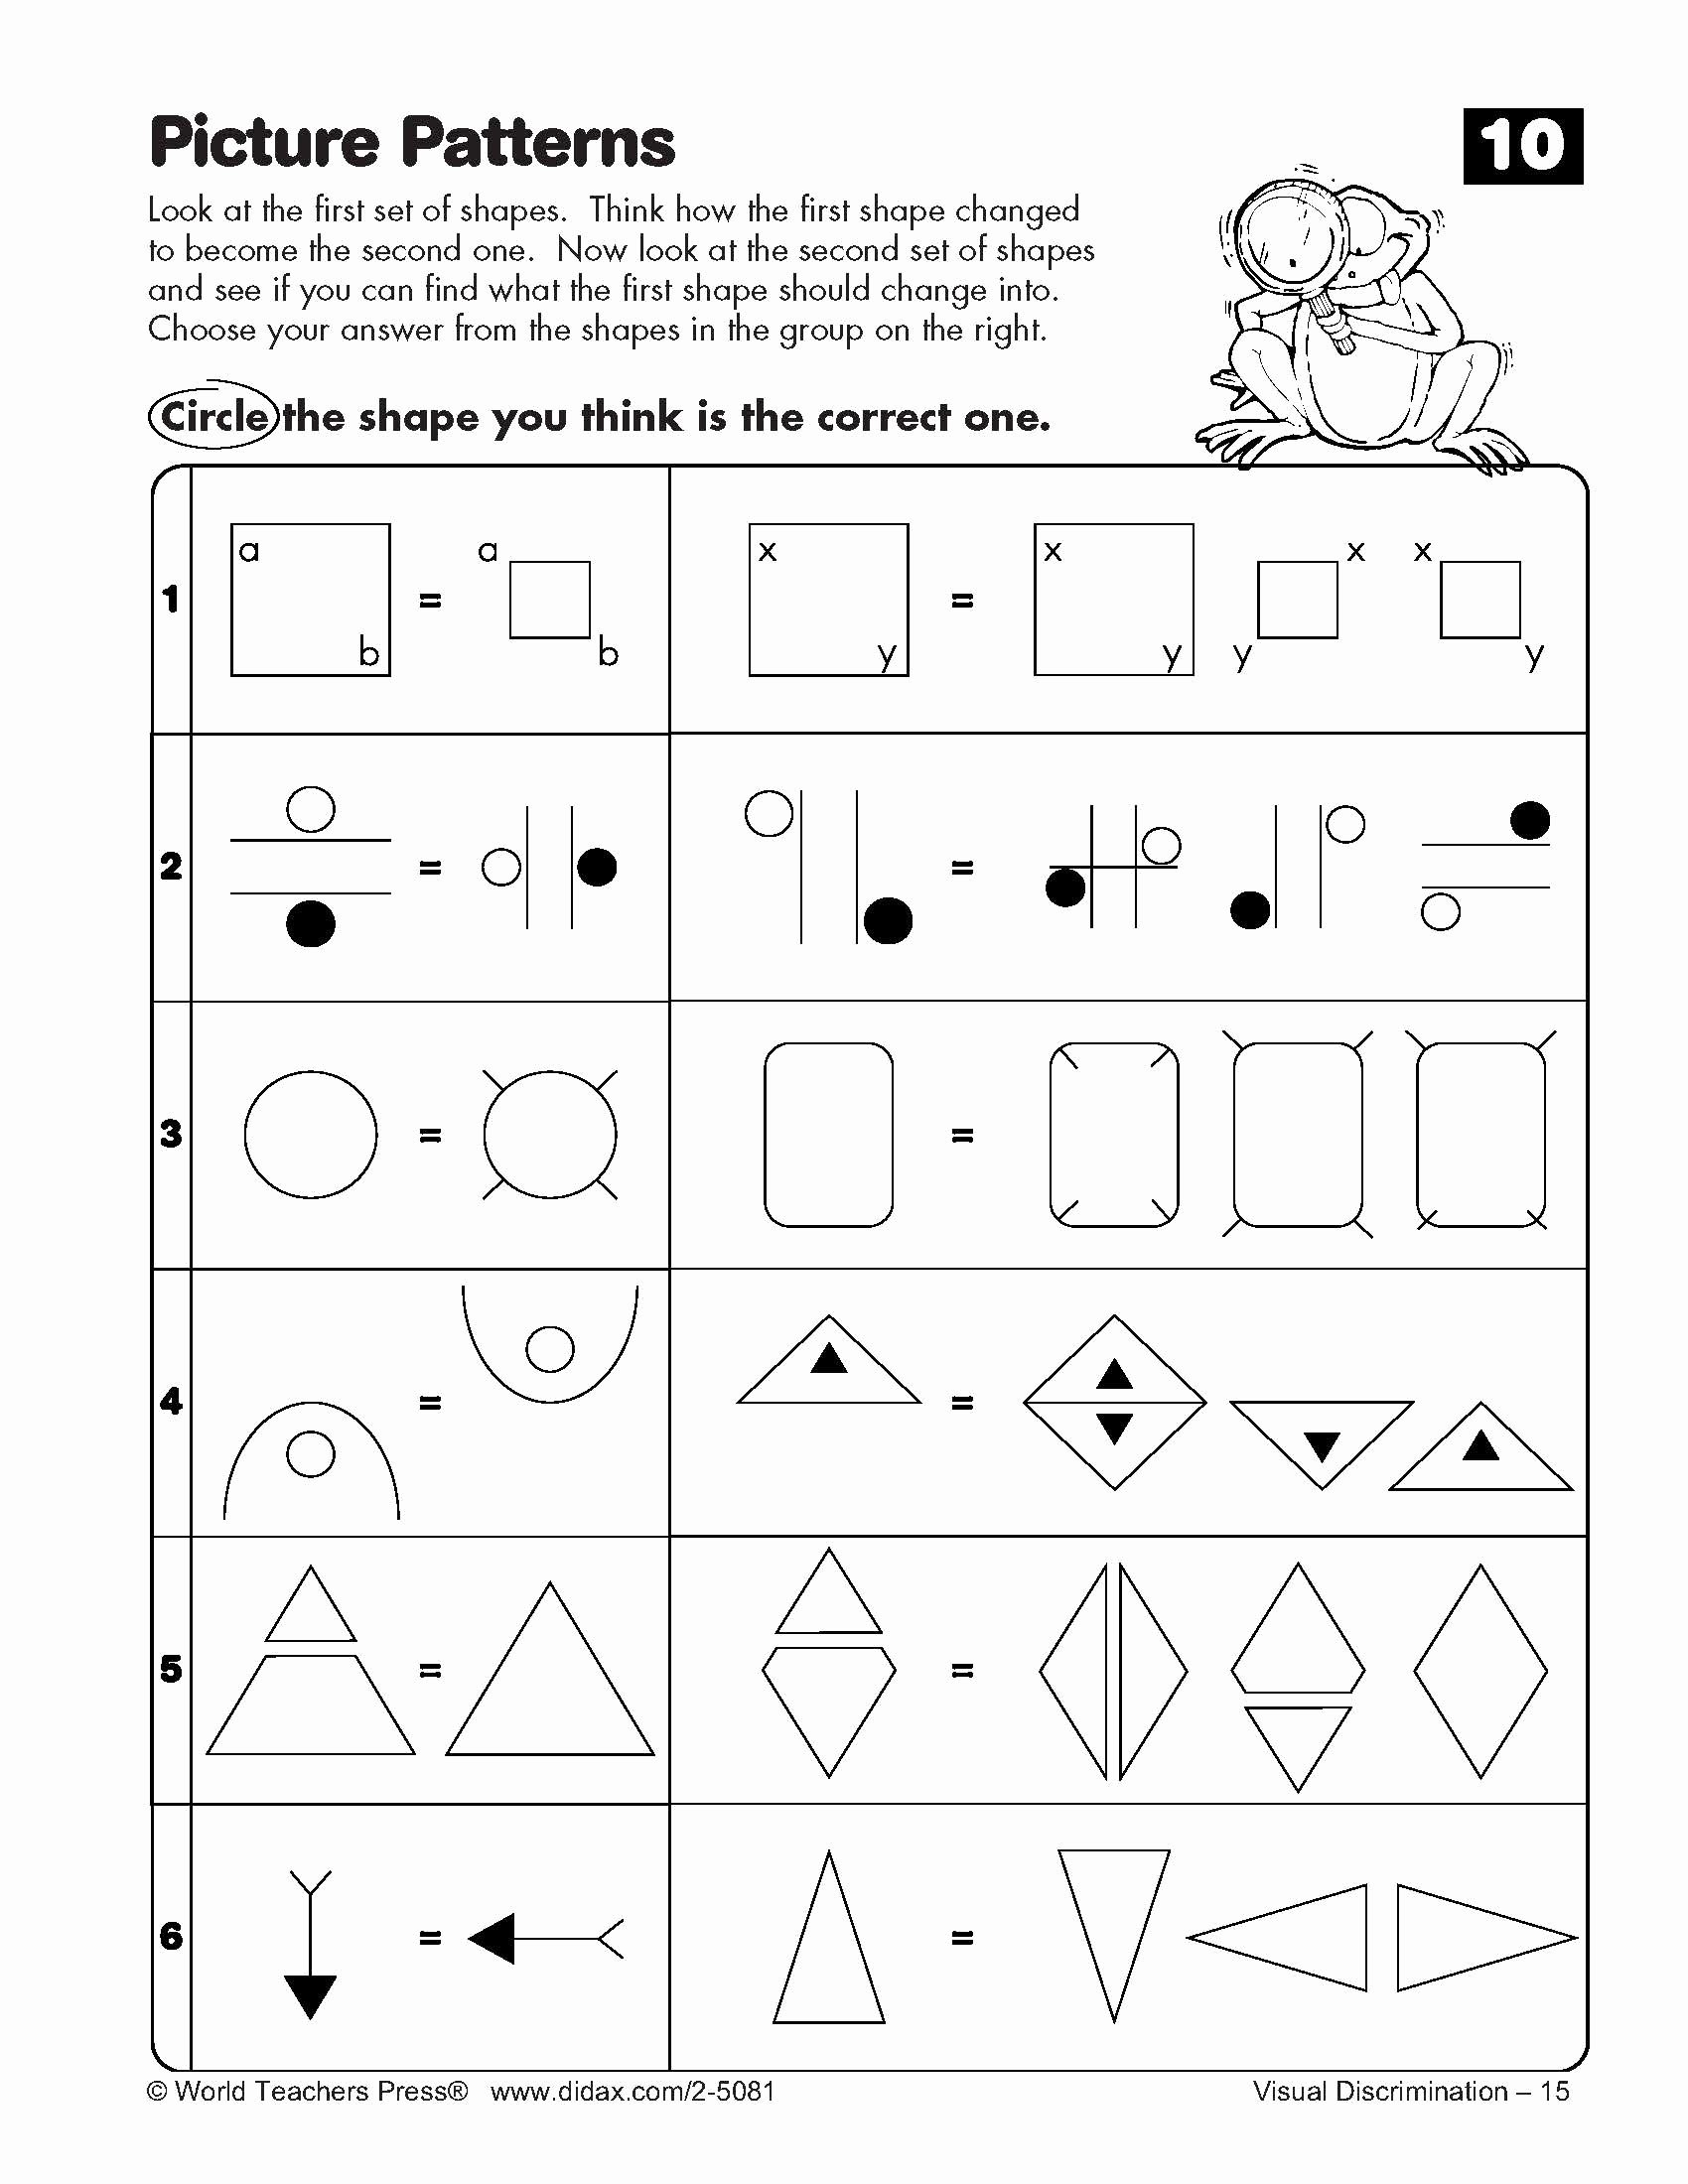 Logical Reasoning Worksheets for Preschoolers Printable Critical Thinking Worksheets Third Grade Uncategorized Math